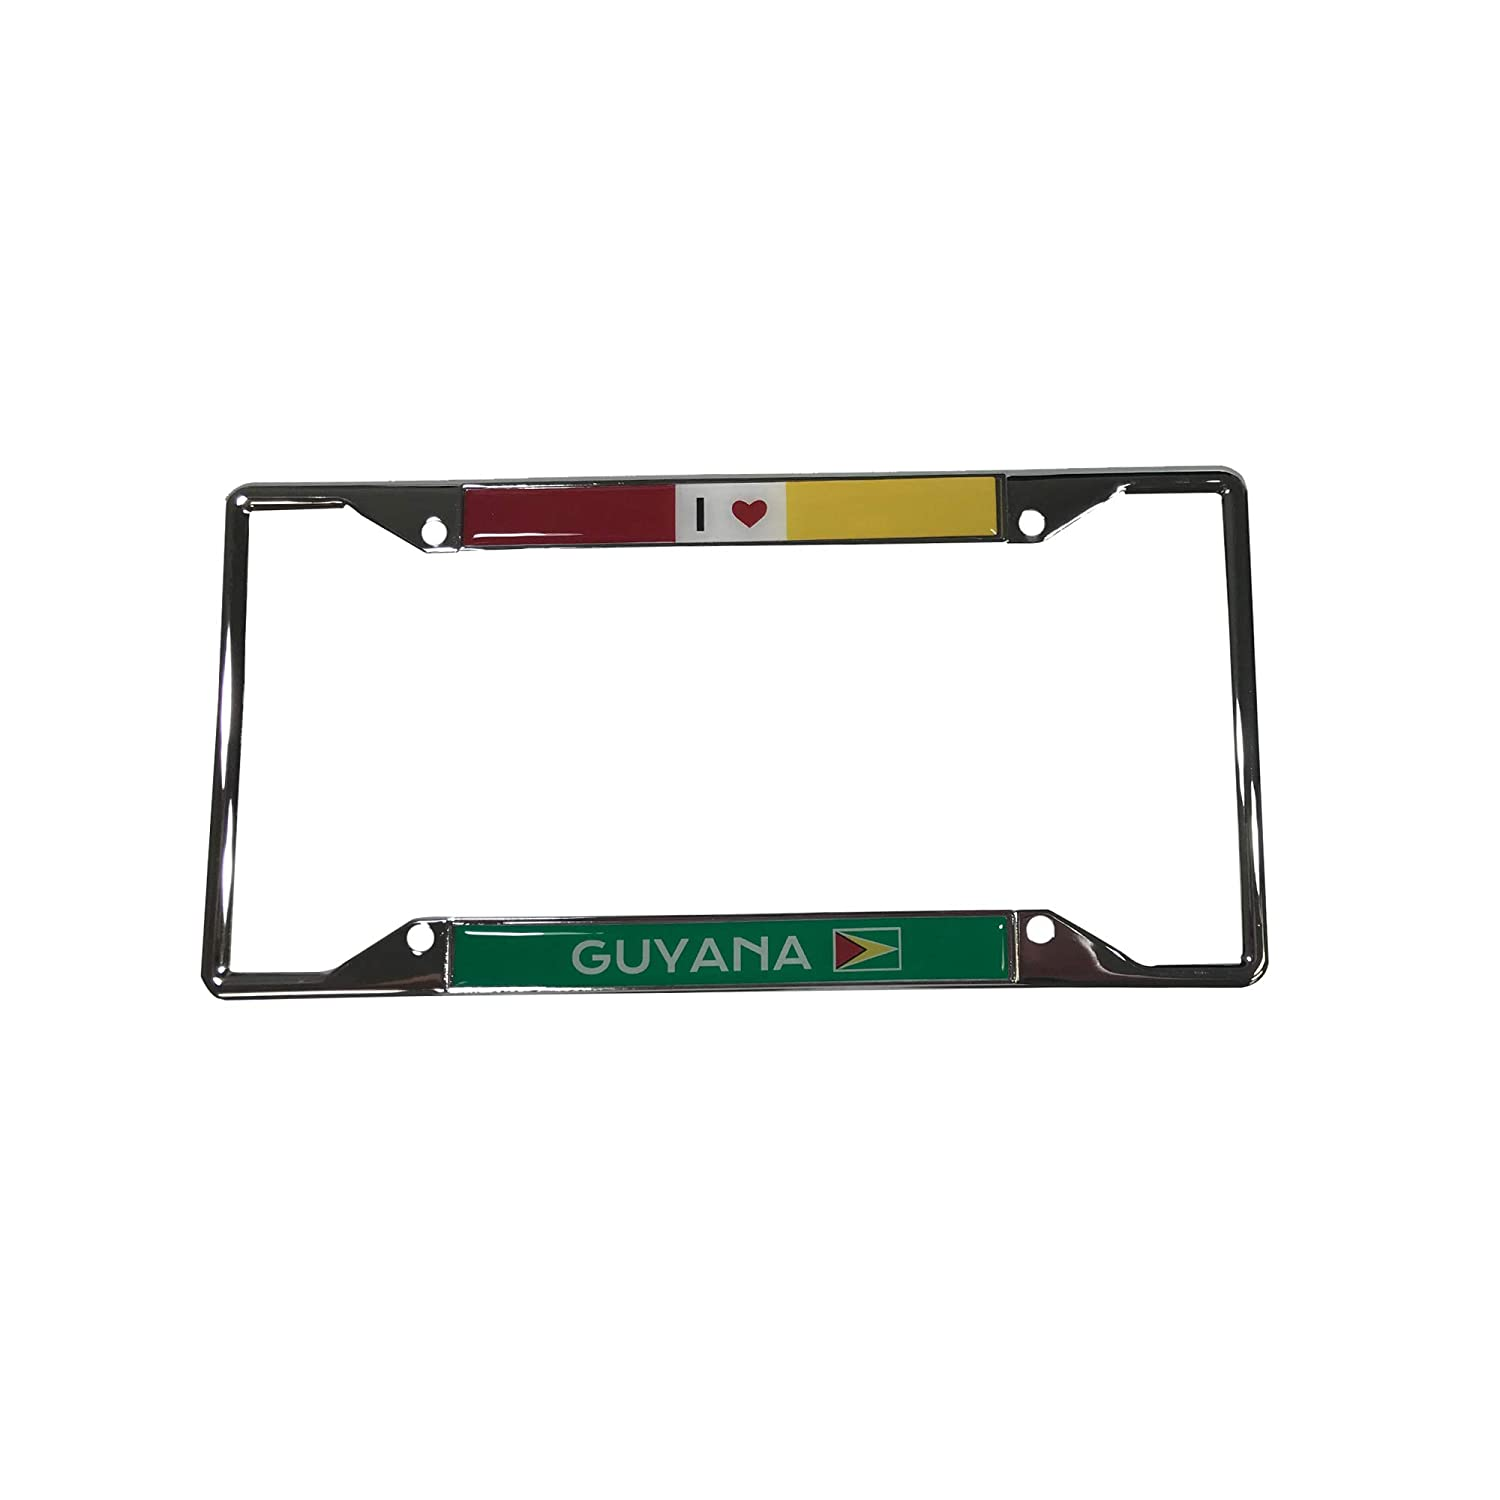 Desert Cactus Country of Guyana I Heart Love License Plate Frame for Front Back of Car Vehicle Truck Guyanese